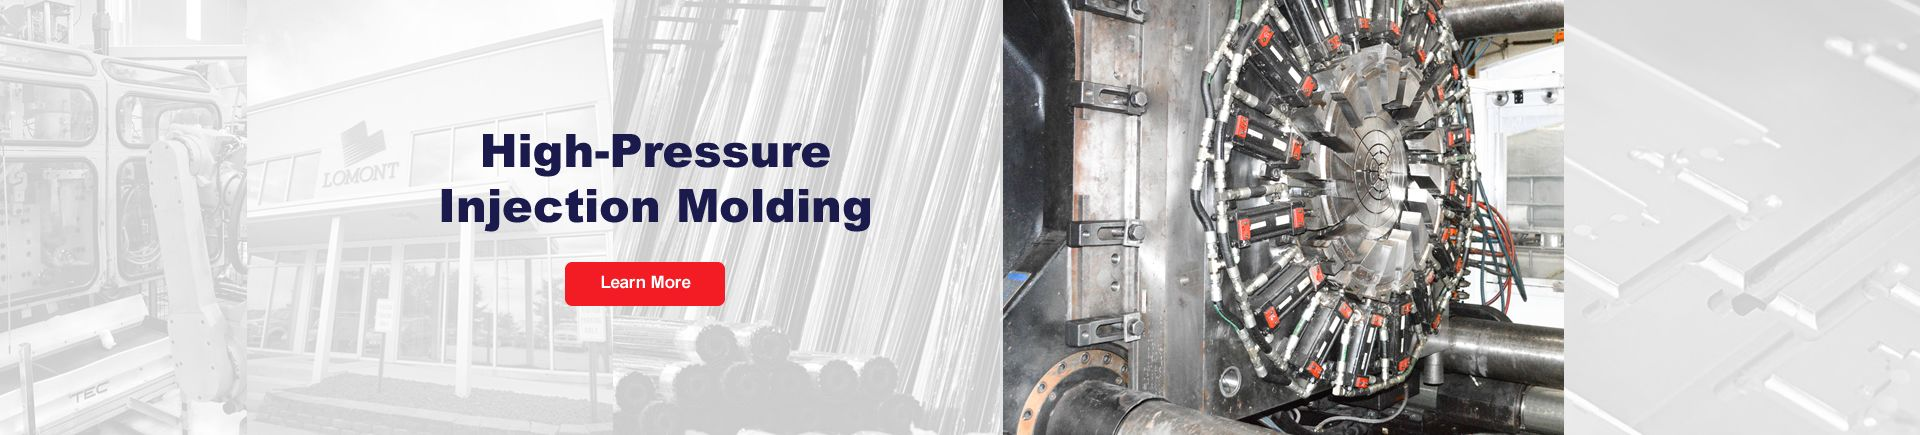 Custom Molding, Design, and Engineering Services | Lomont